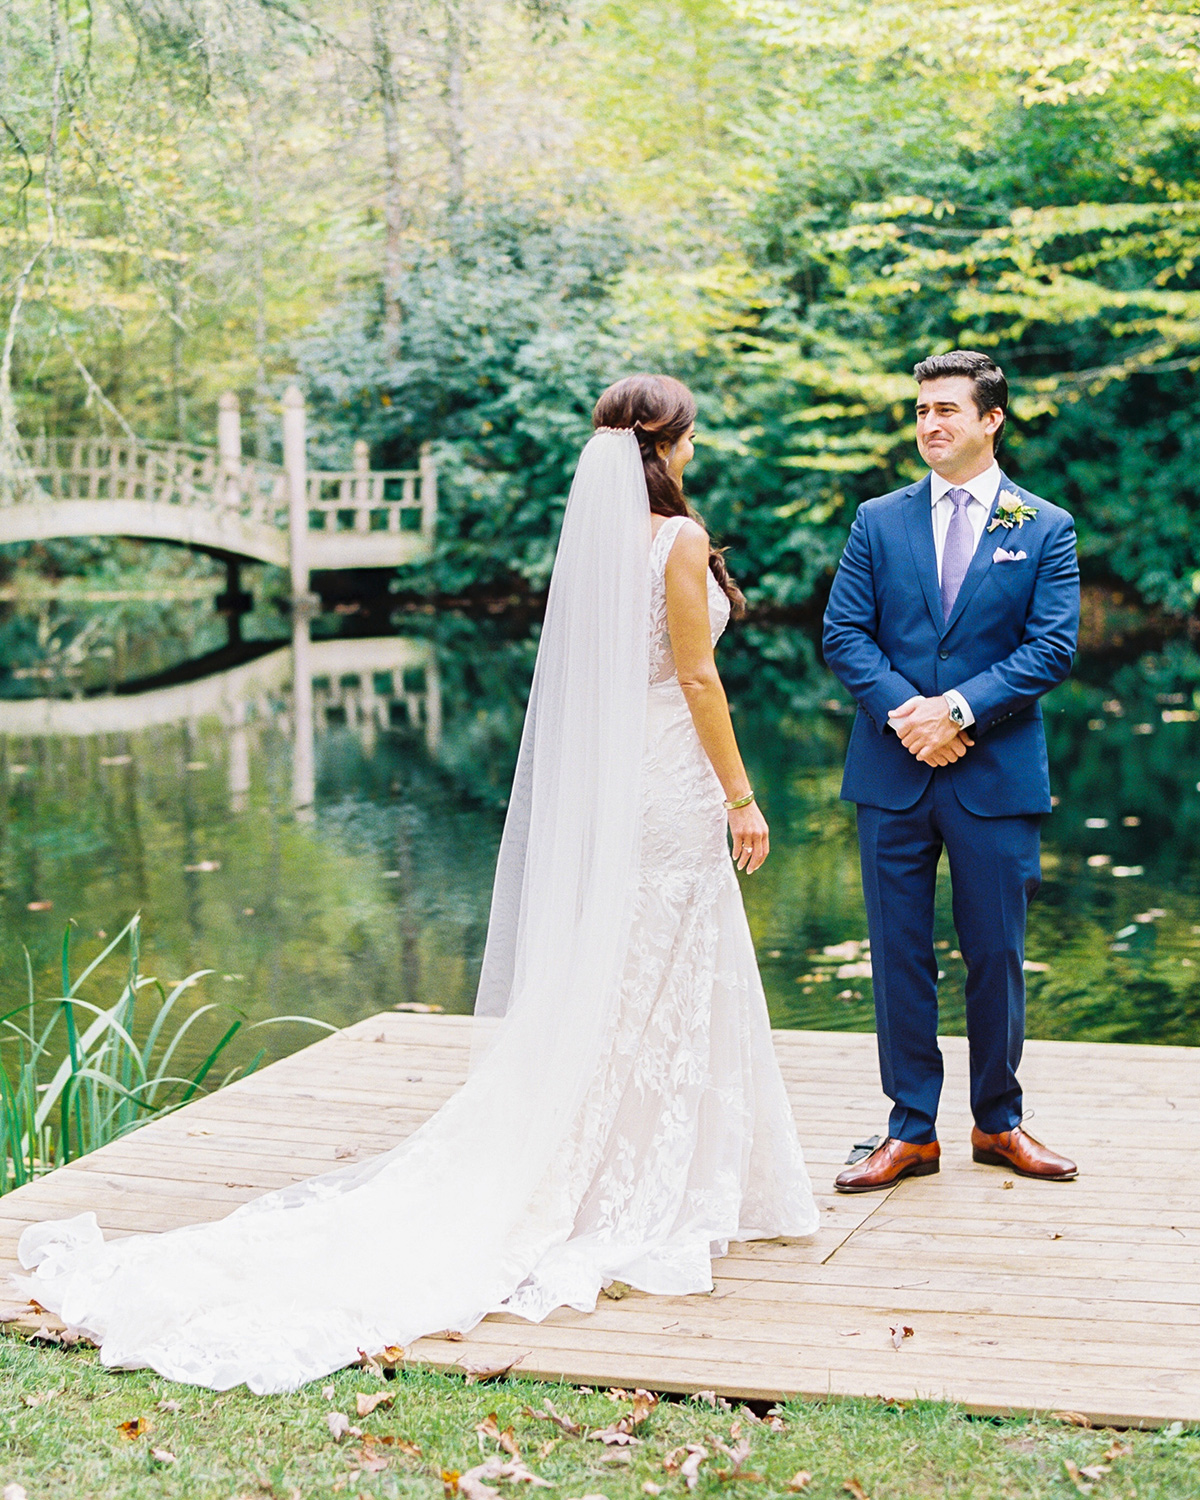 Bride and groom on wooden bridge during first look